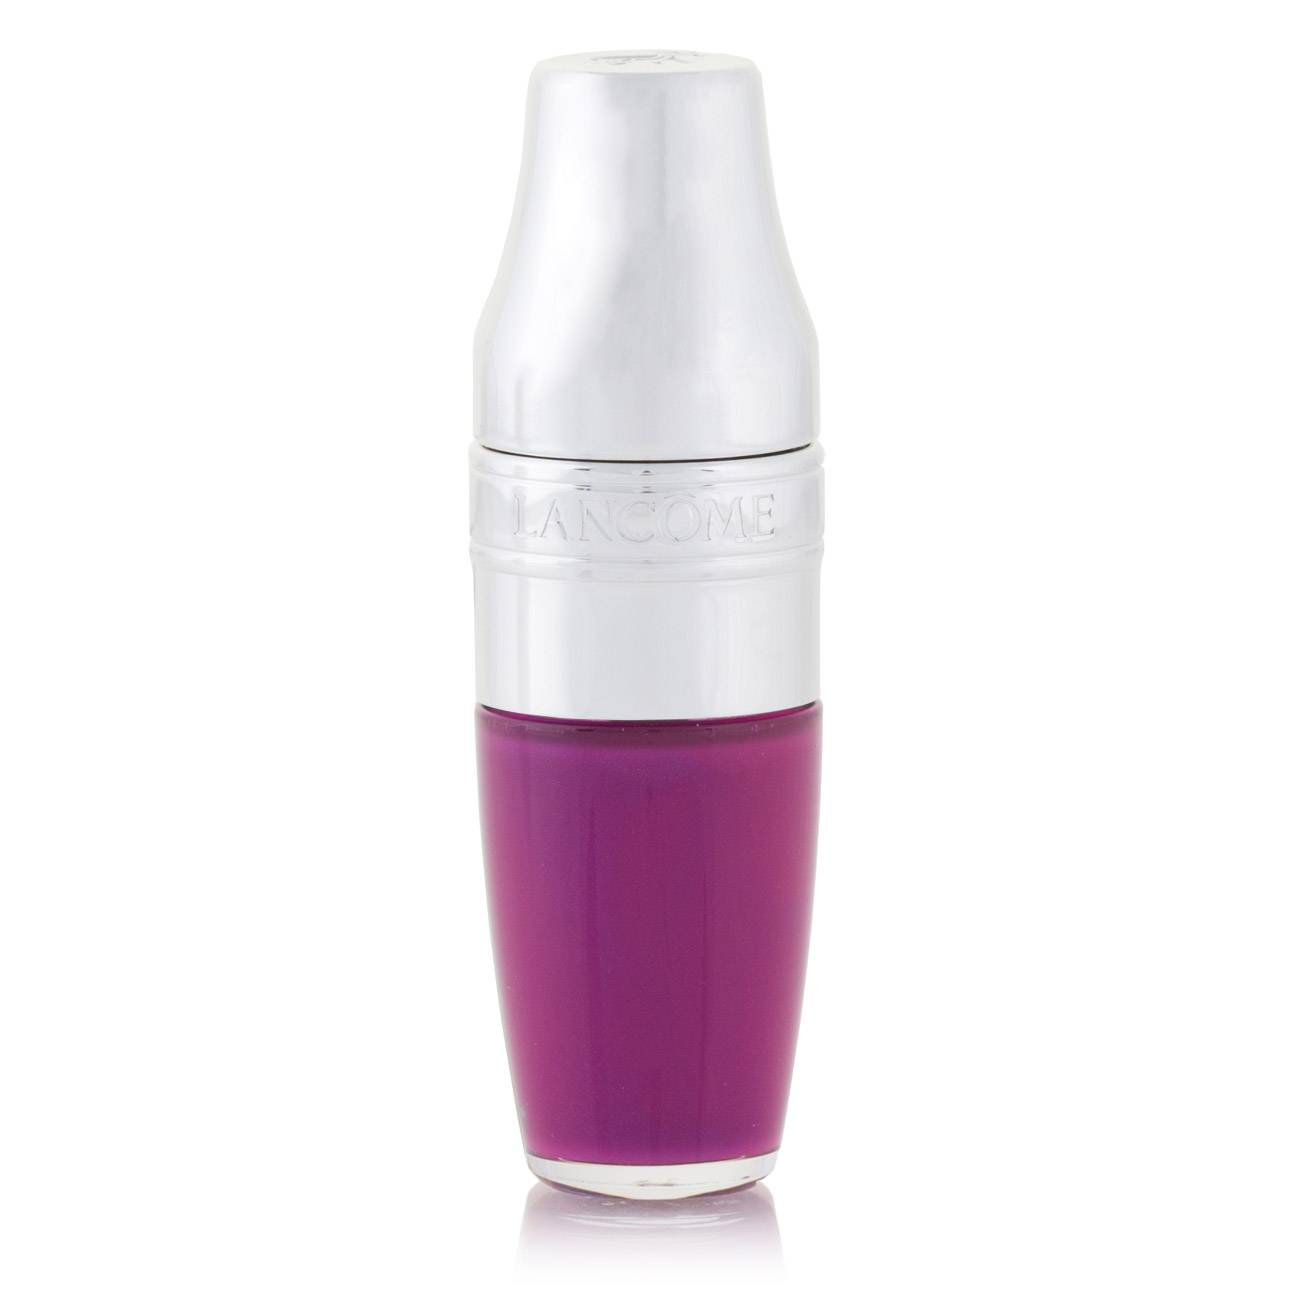 JUICY SHAKER 283 6.5ml